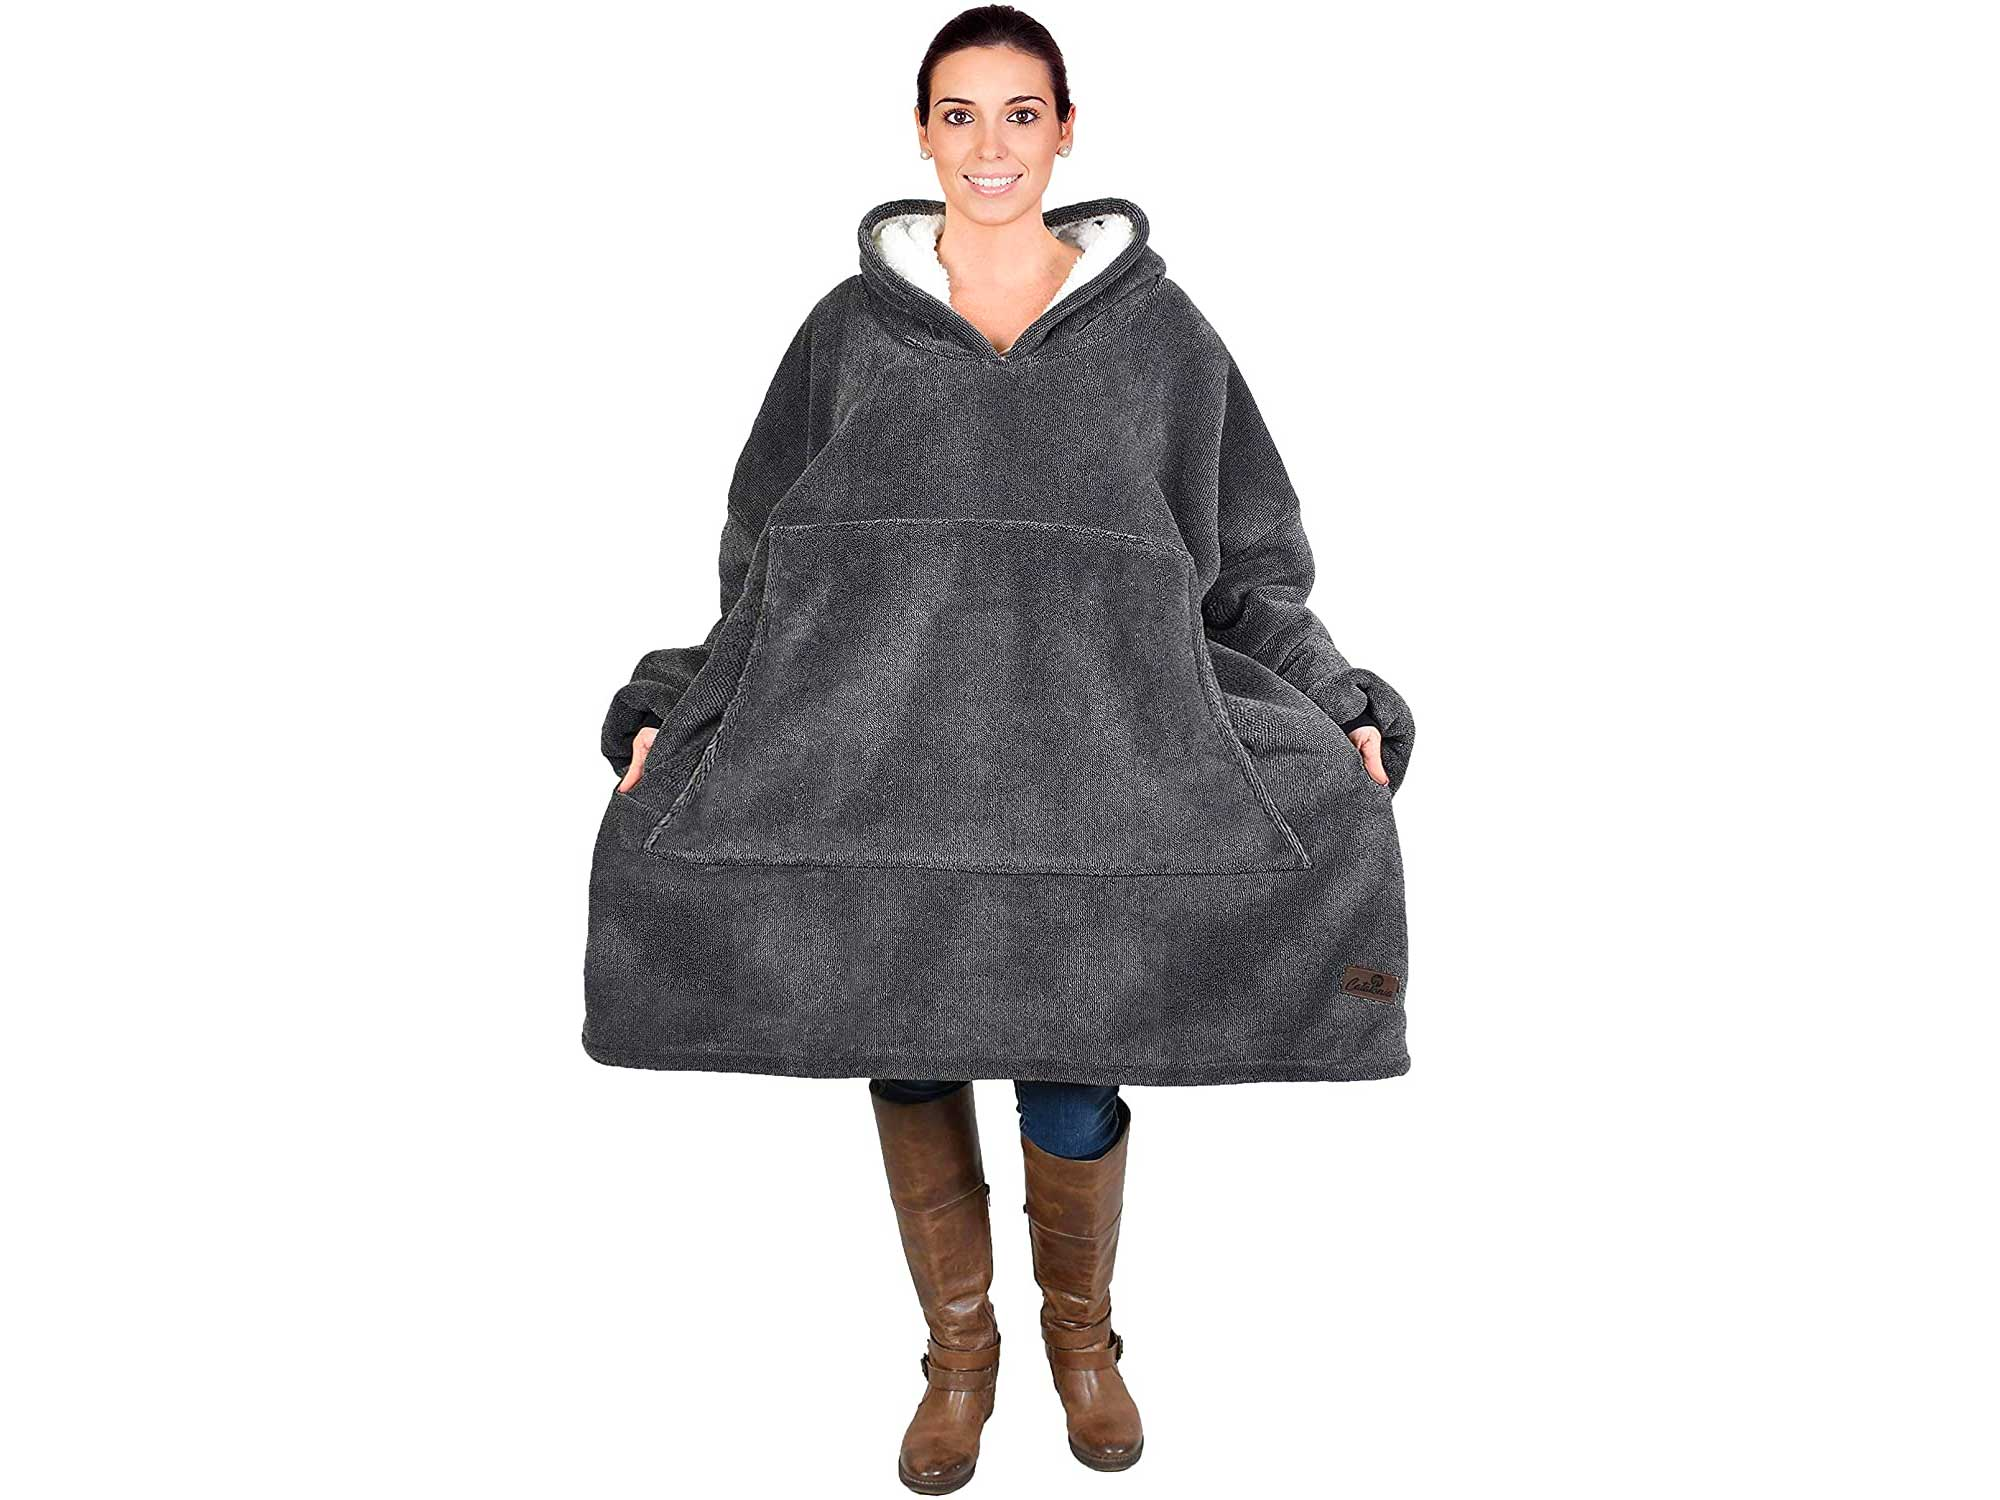 Oversized Hoodie Blanket Sweatshirt,Super Soft Warm Comfortable Sherpa Giant Pullover with Large Front Pocket,for Adults Men Women Teenagers Kids,Ash Charcoal Grey